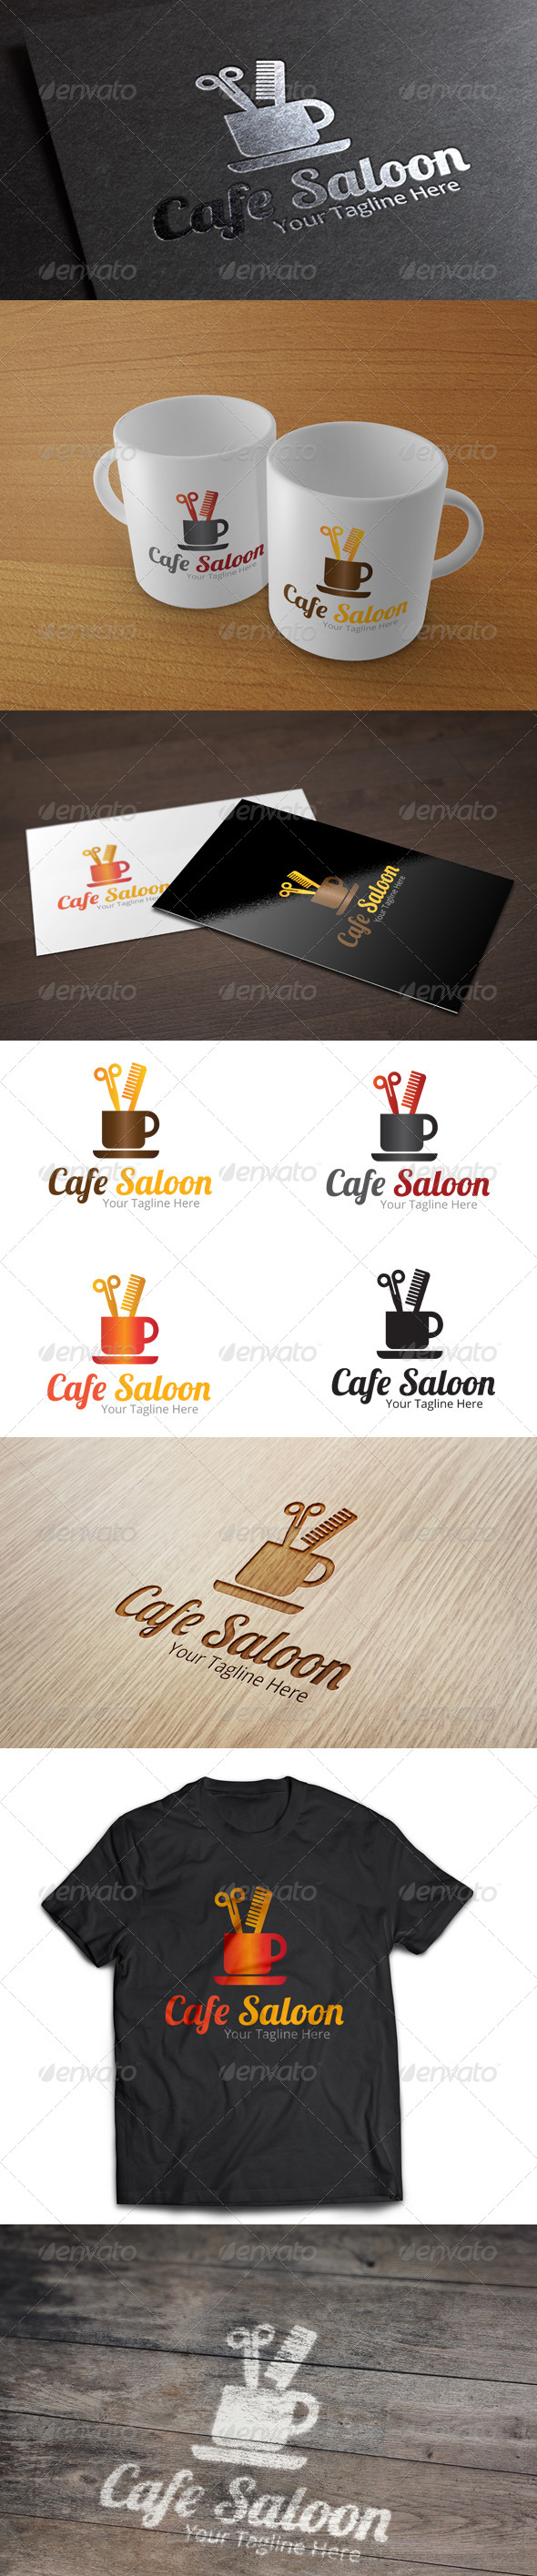 Cafe Saloon - Logo Template - Symbols Logo Templates